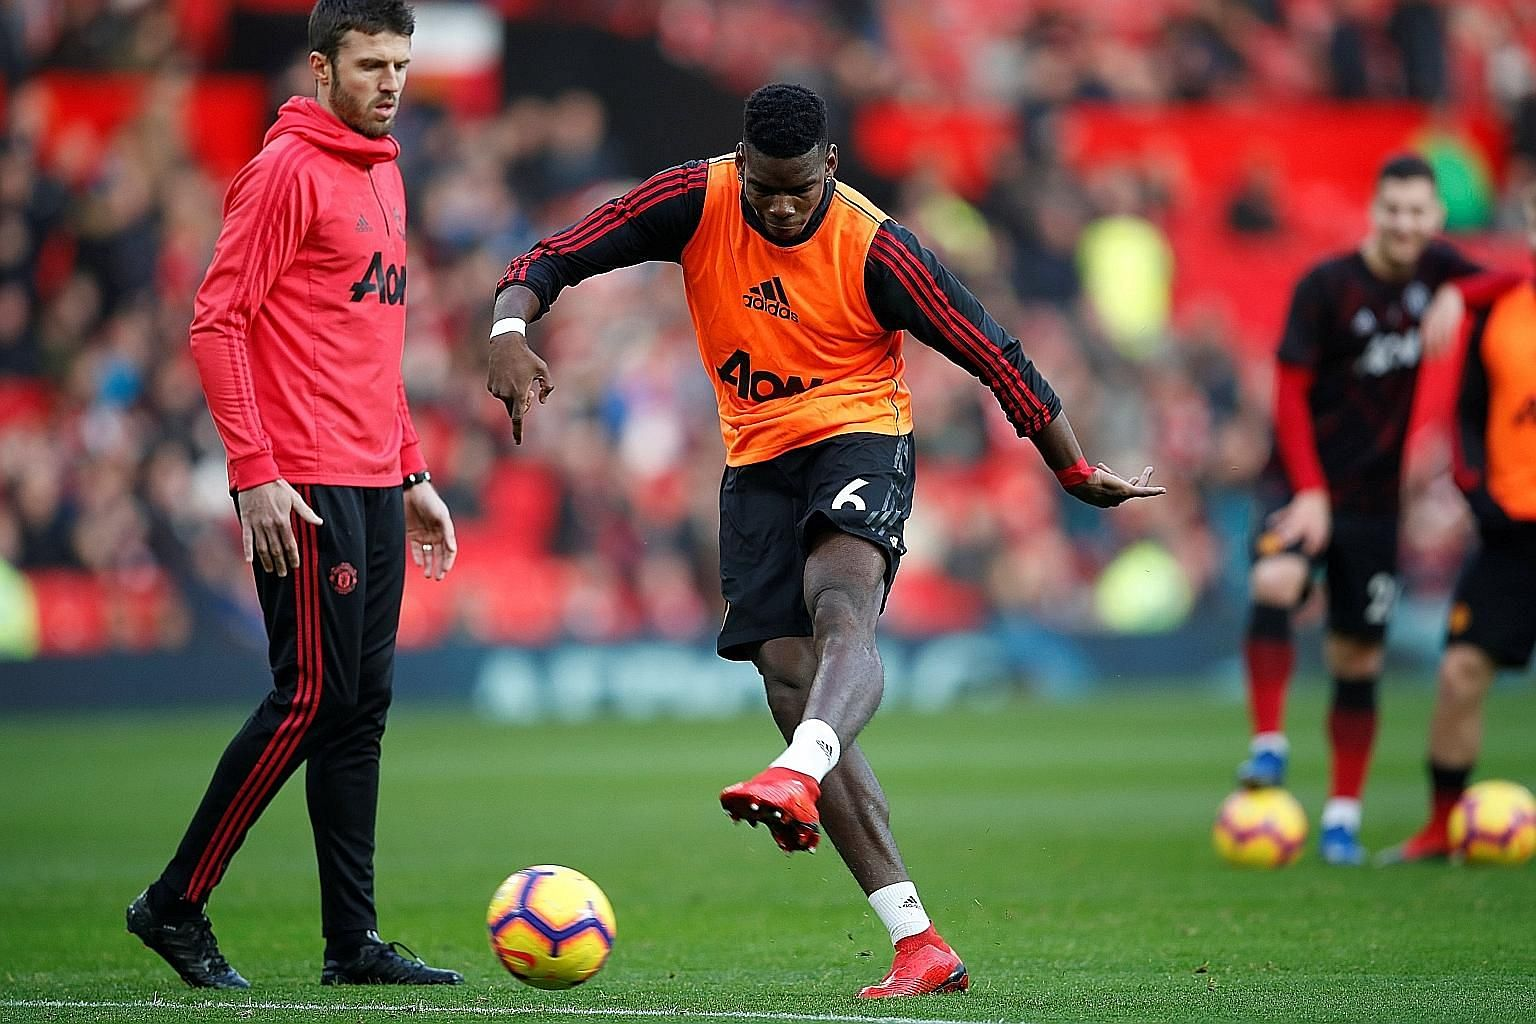 Manchester United midfielder Paul Pogba has been impressive under the guidance of caretaker manager Ole Gunnar Solskjaer and his assistant Michael Carrick (left), scoring four league goals and recording four assists in his last five matches.